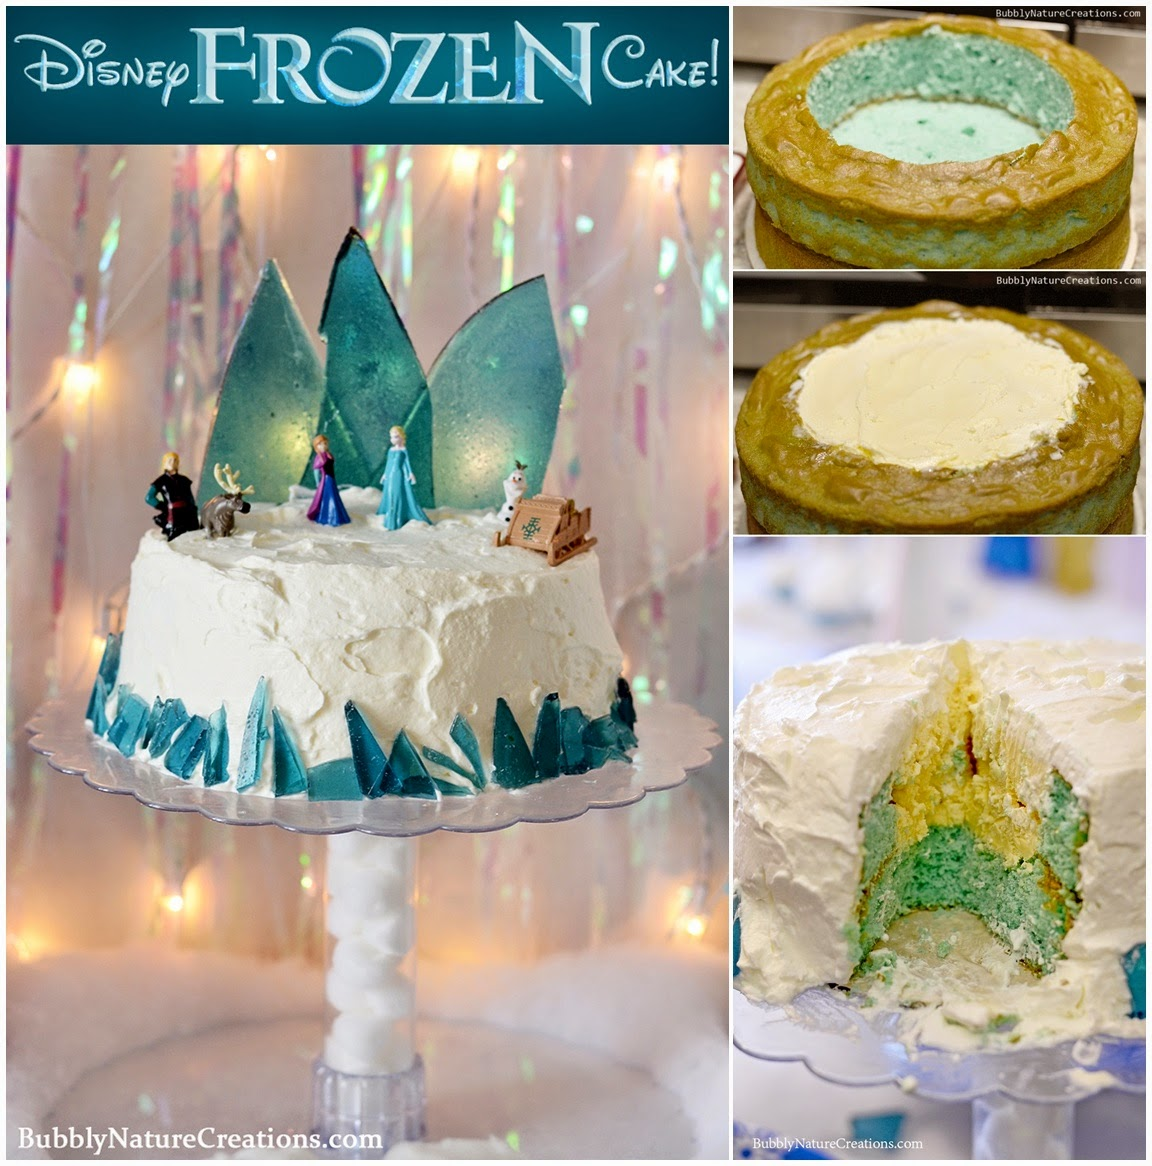 Disney Frozen Cake -- Ice Cream Cake